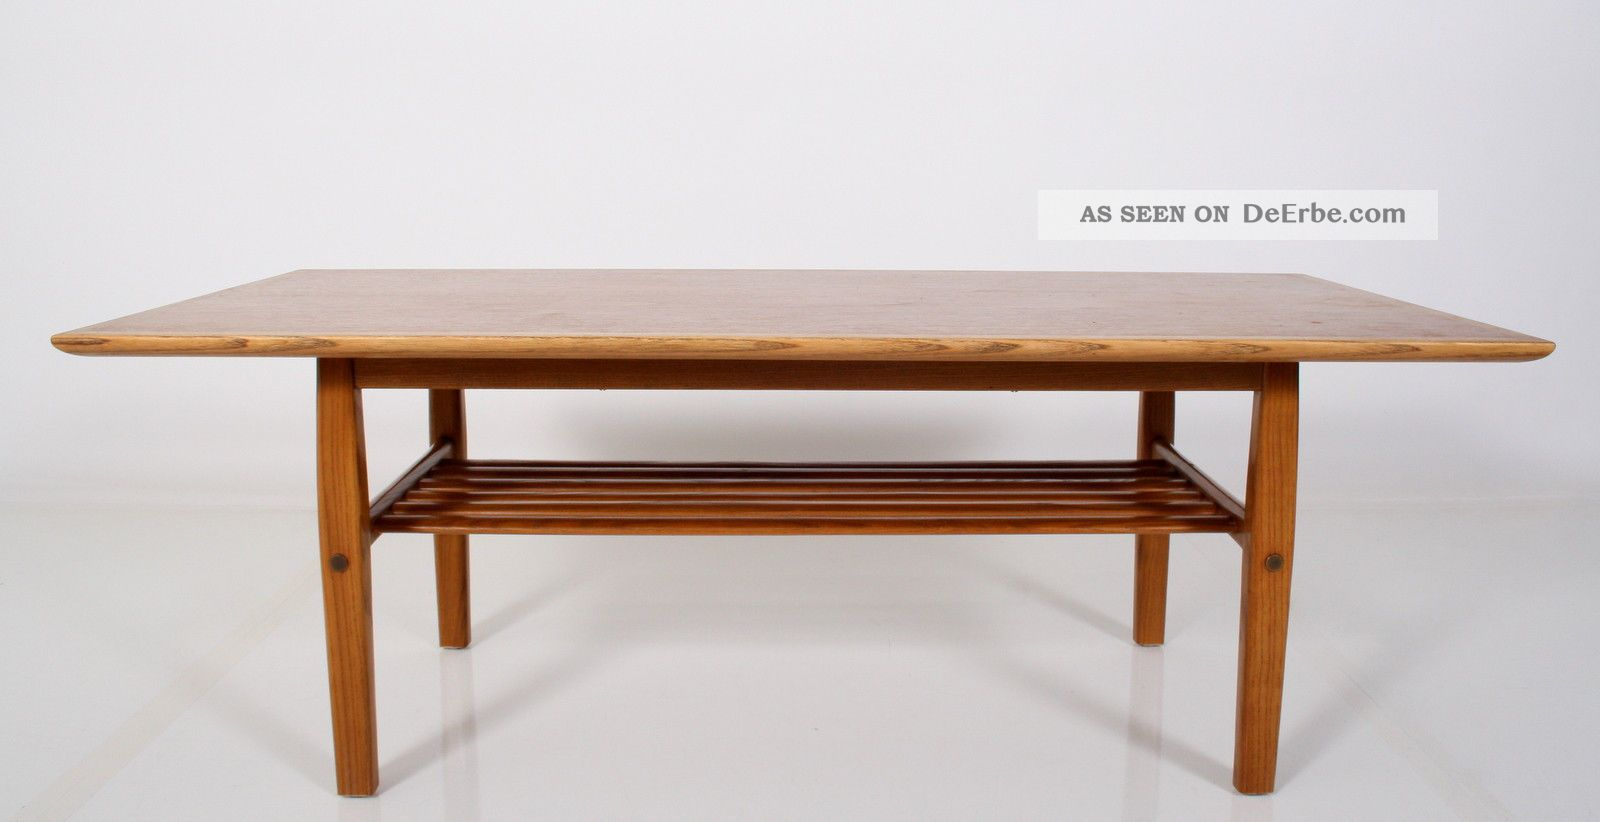 Danish Design Couchtisch Teak 60er Coffee Table Danish Design Couchtisch Tisch Table 60s A